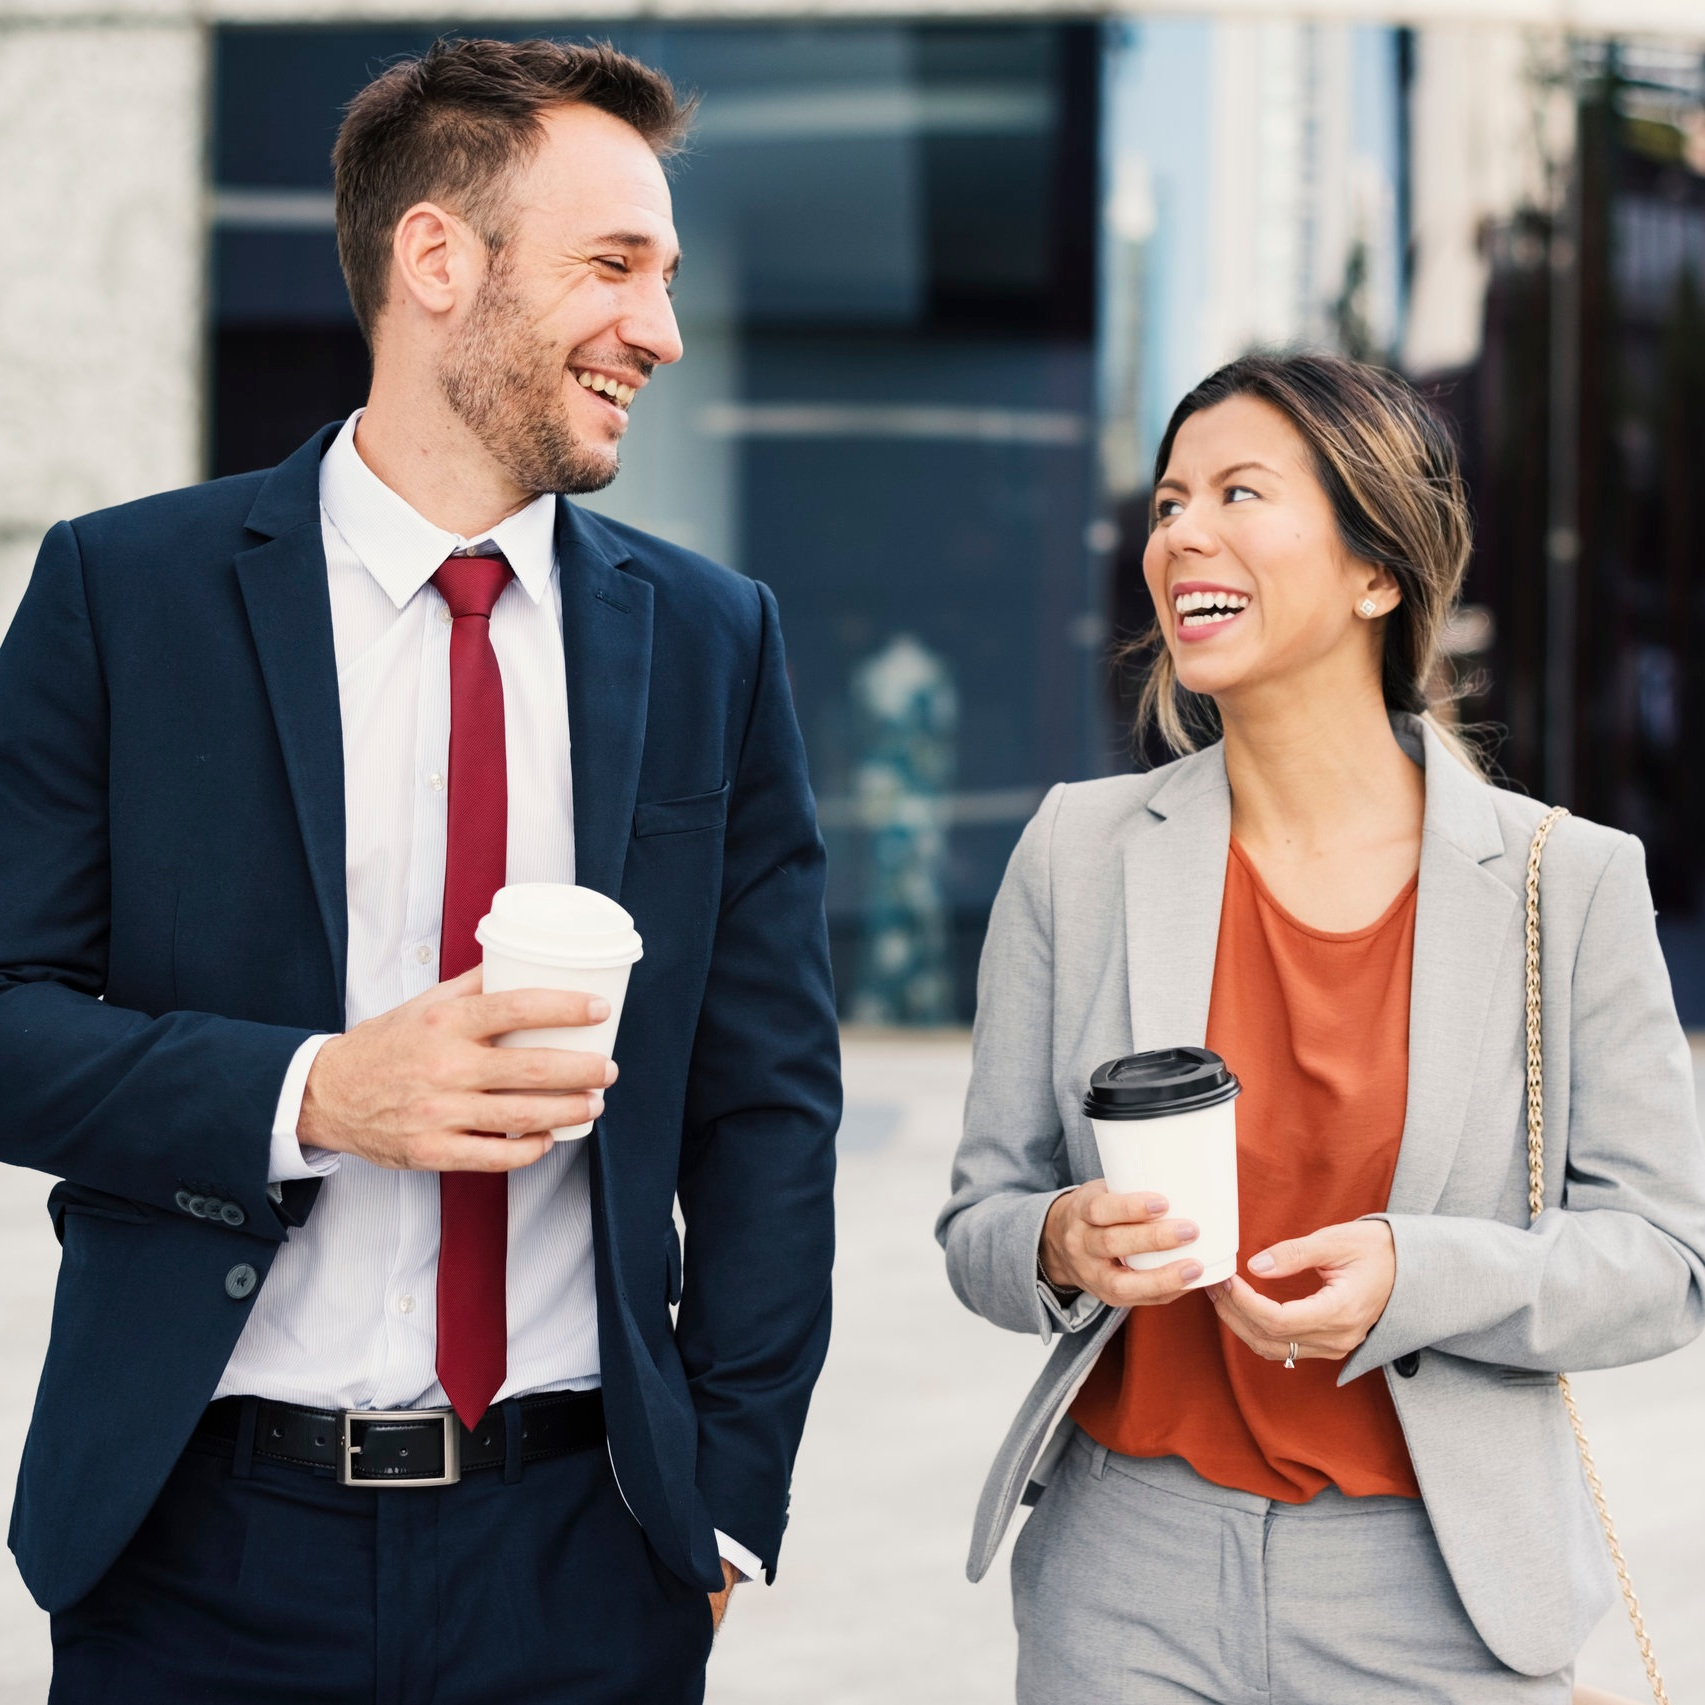 business-people-discussion-happiness-coffee-PBCV3V5.jpg